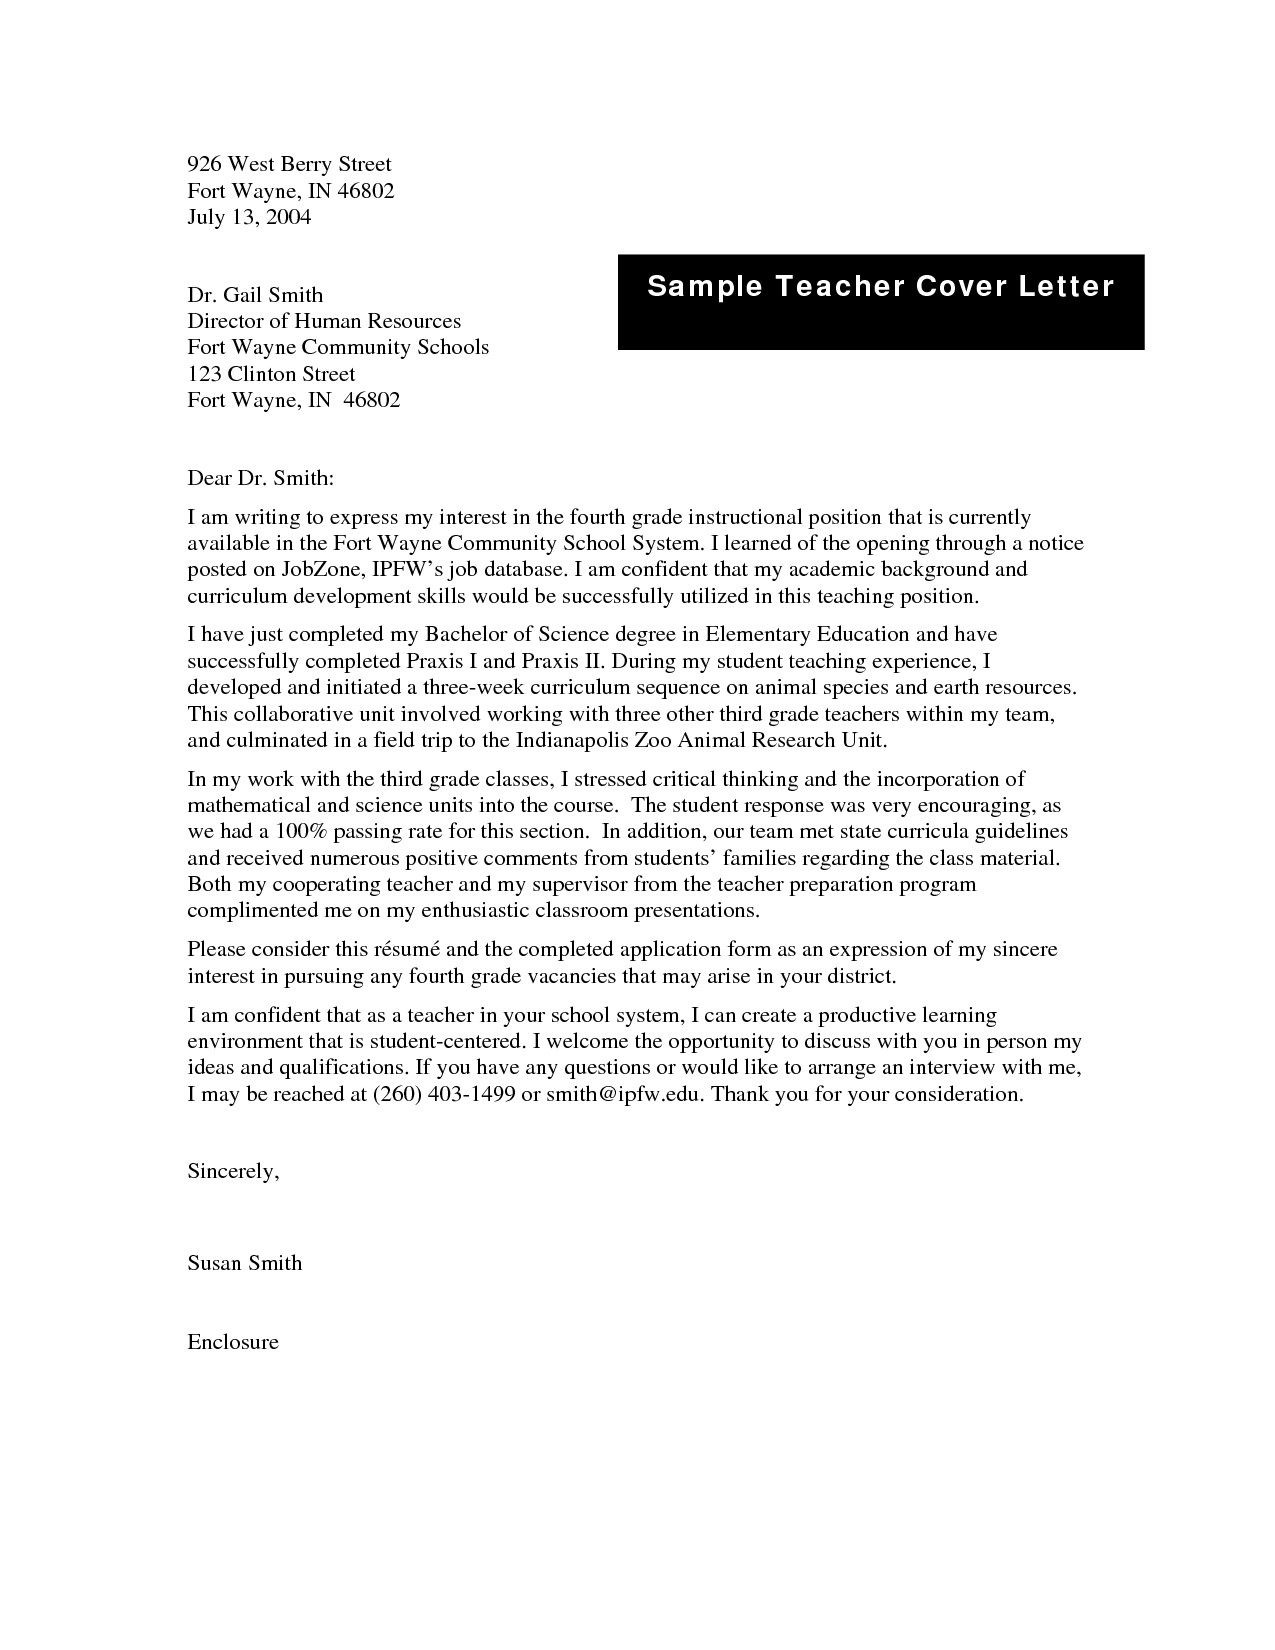 Letter Templates For Teachers - Fieldstation.co for Formal Letter Format To A Teacher 20036